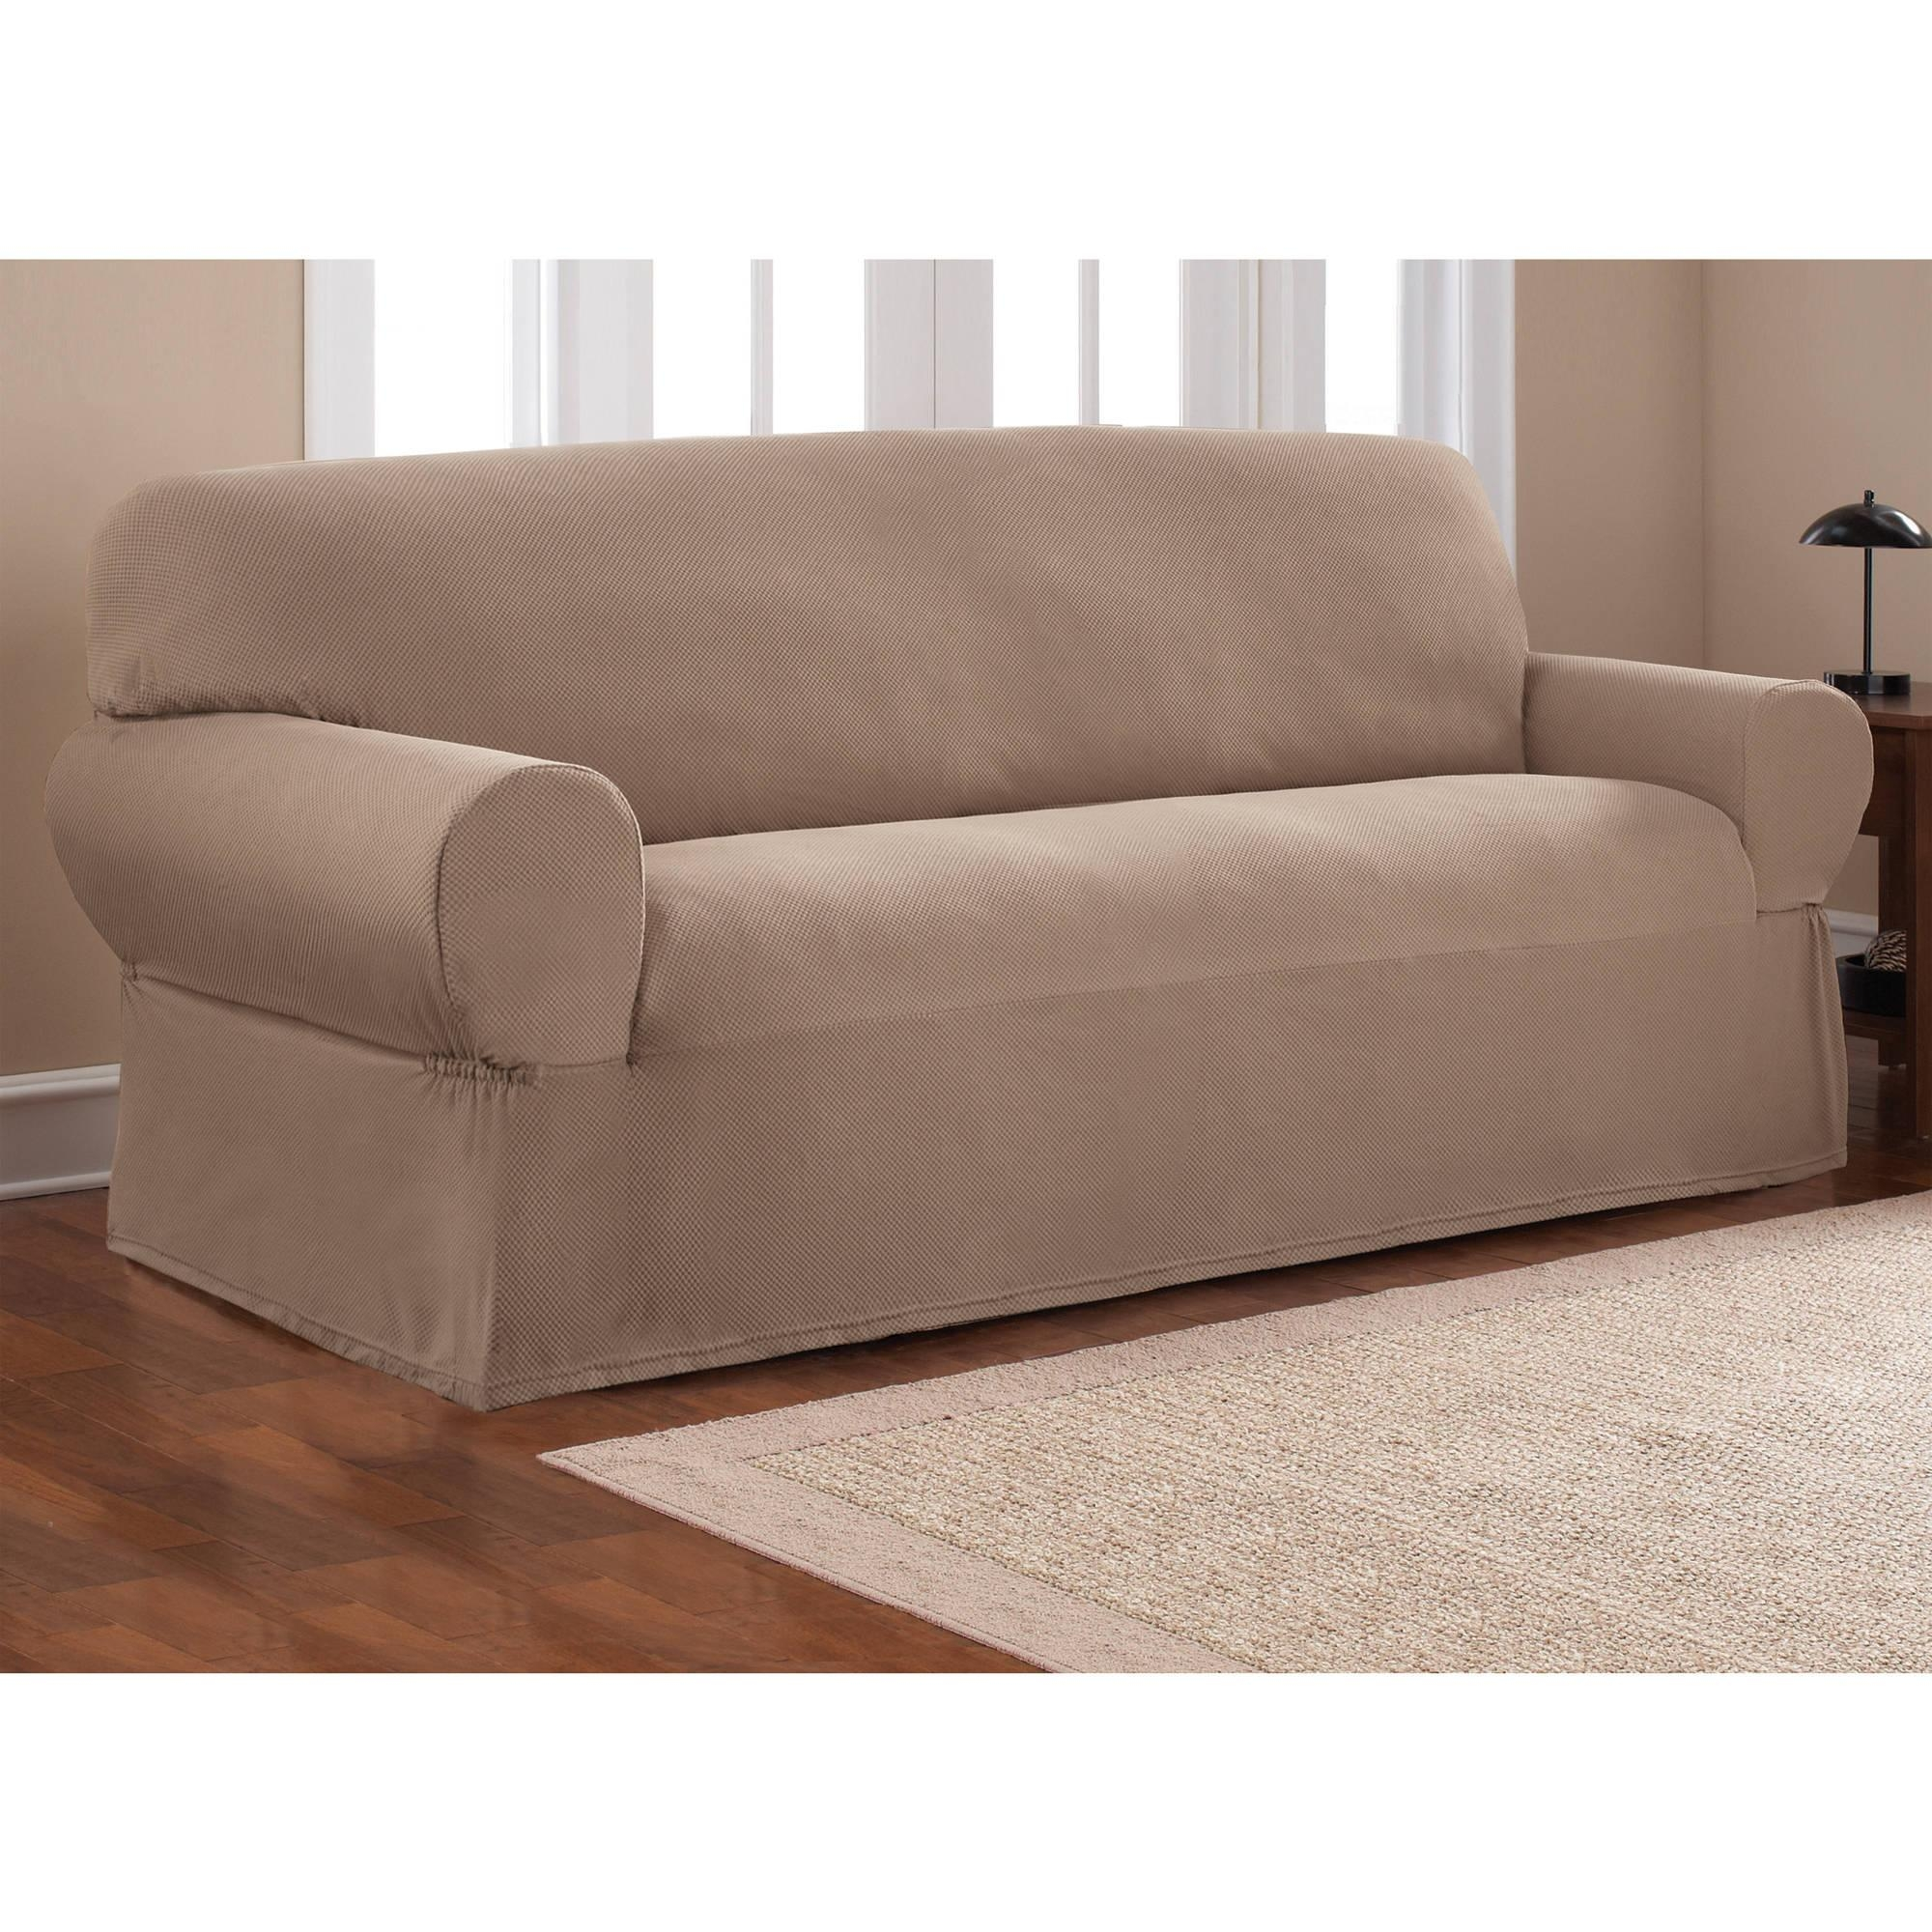 Featured Image of Walmart Slipcovers For Sofas